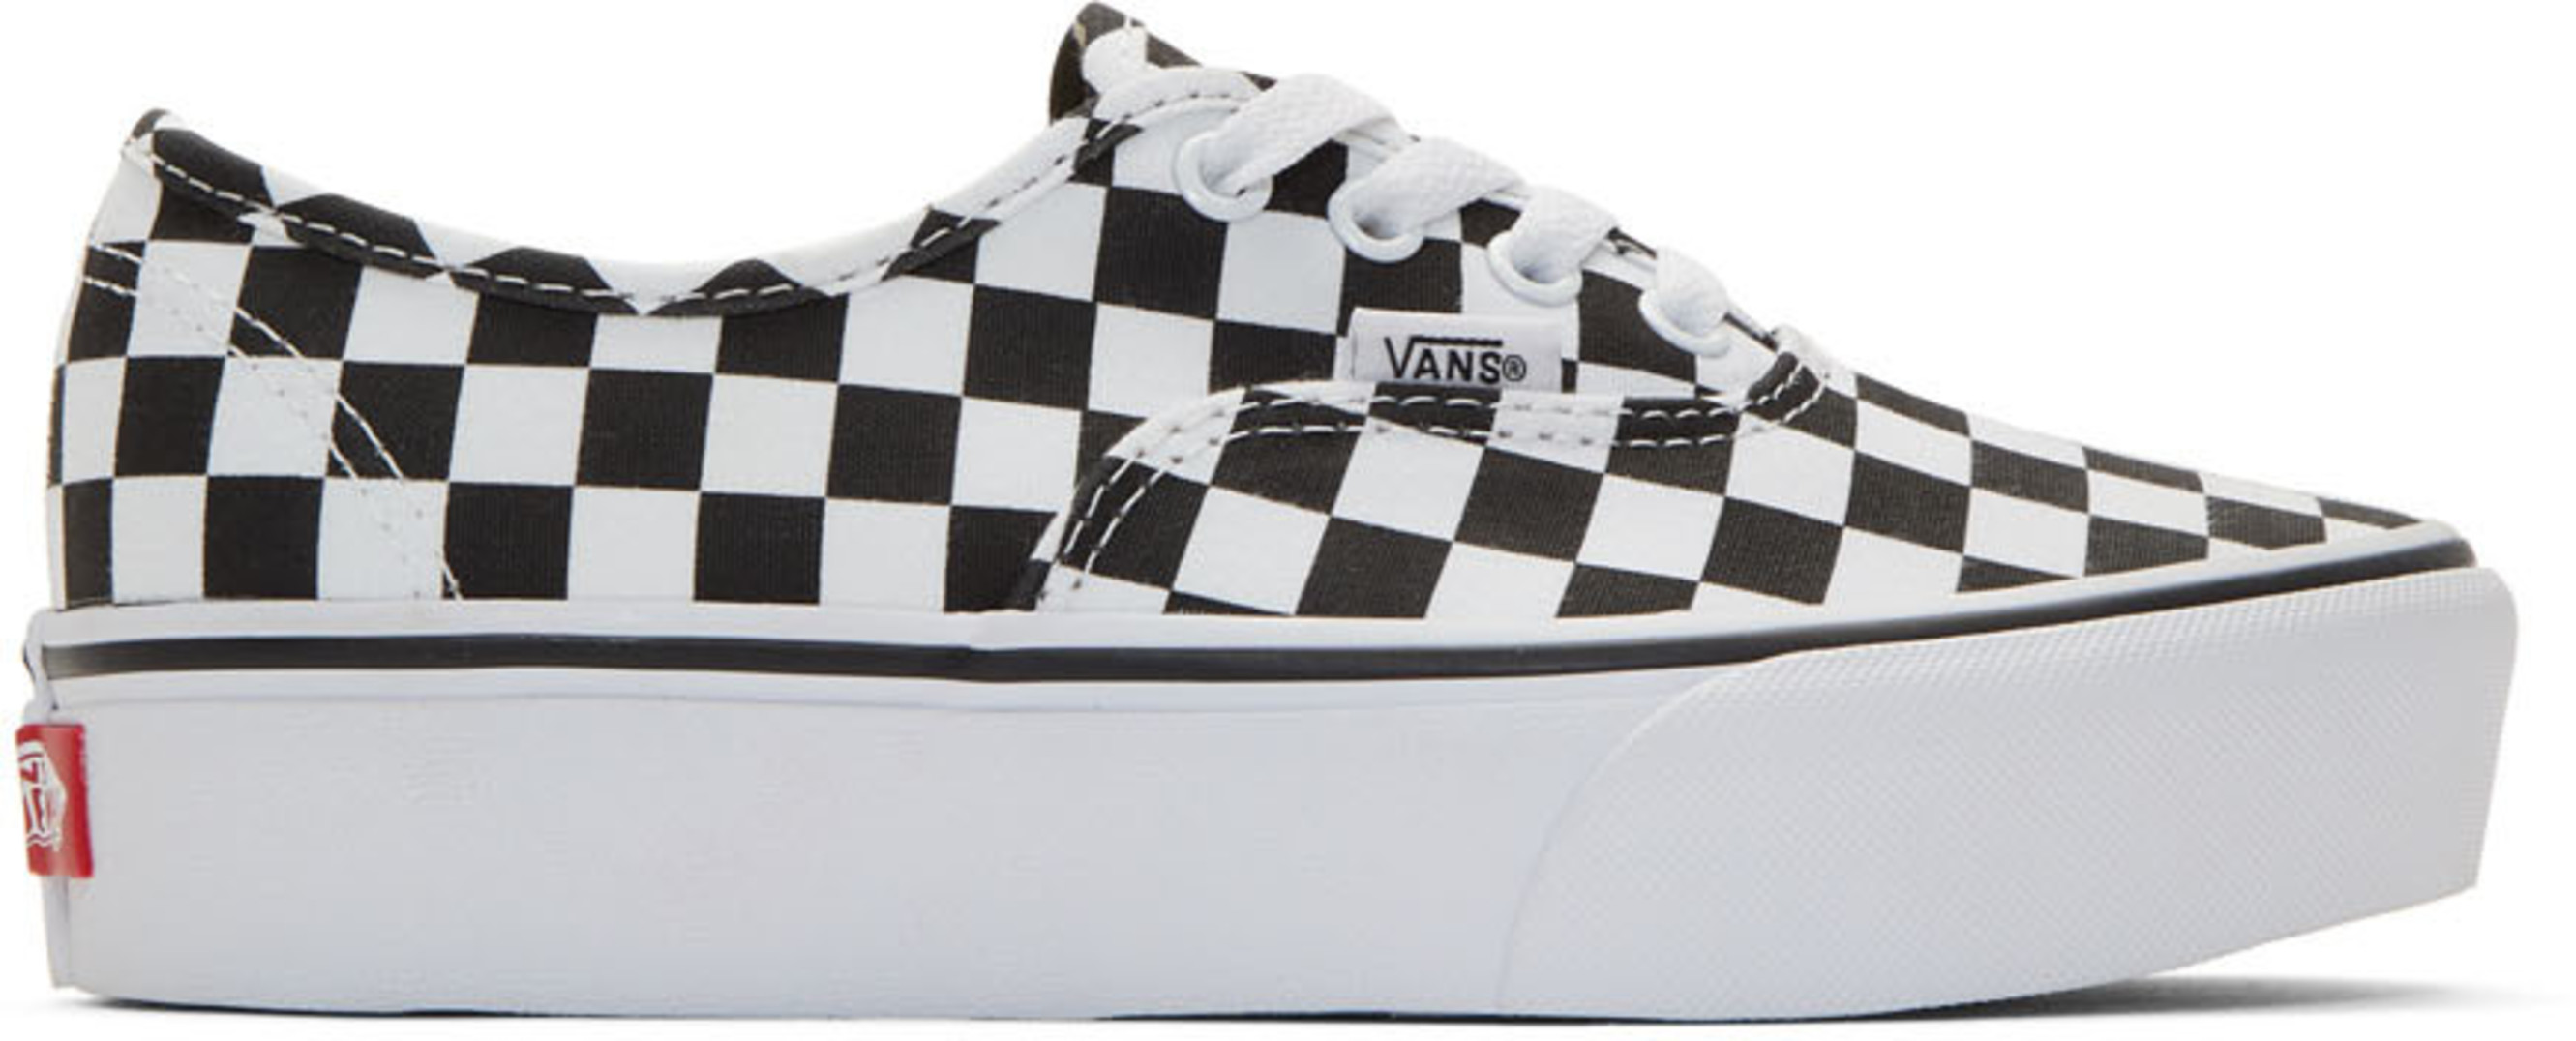 934729b2afc Vans for Women SS19 Collection